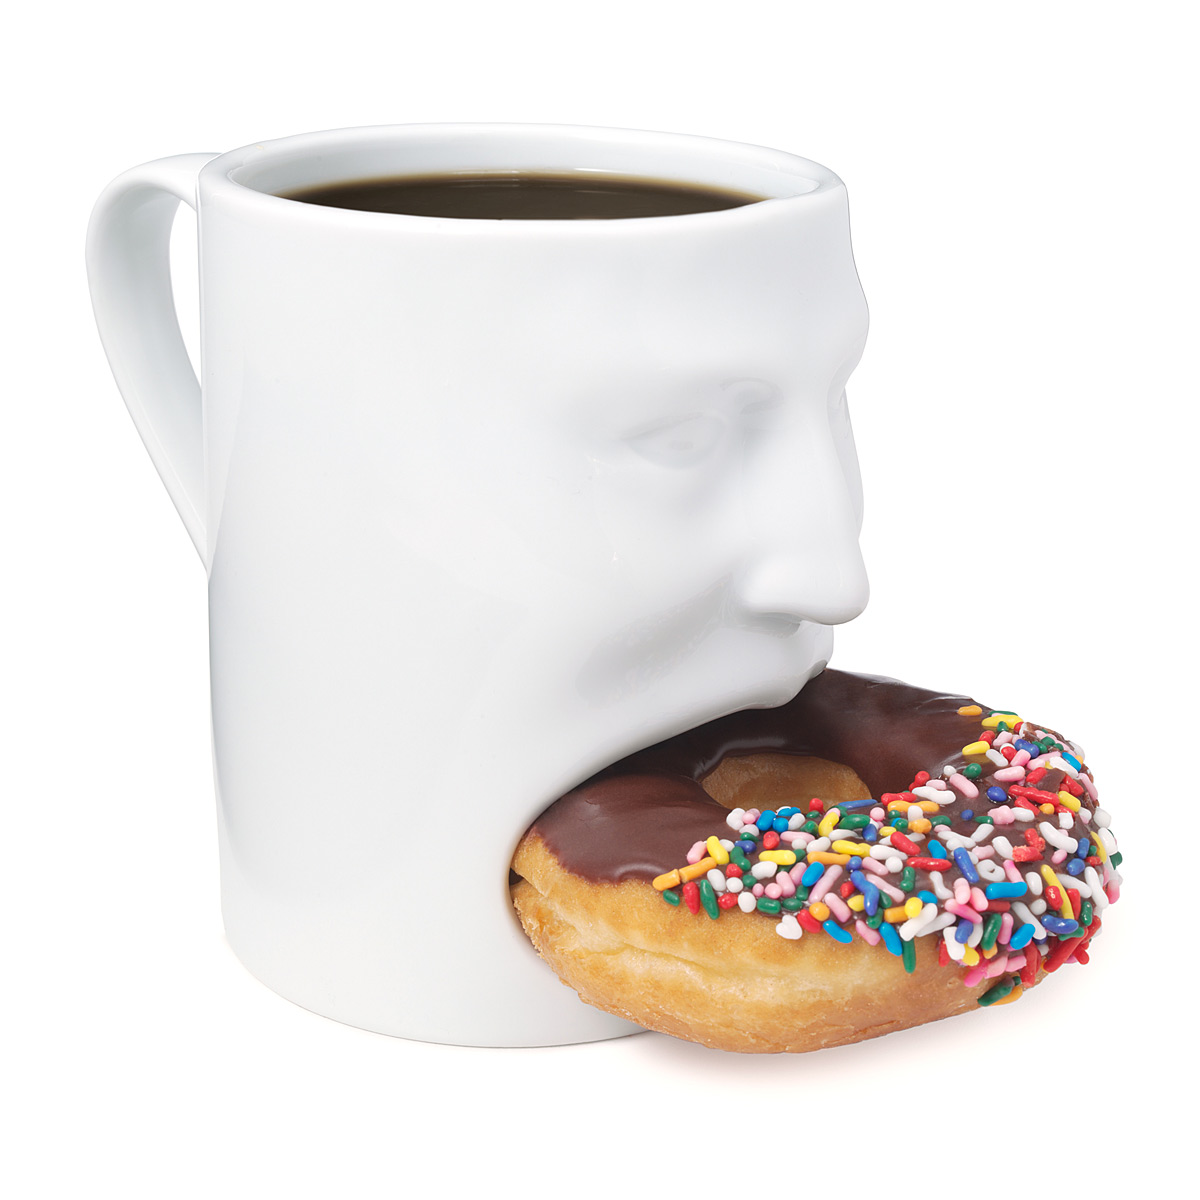 Tea / coffee mug face style with biscuit holder / Promotional product fully customized  to your requirement UK Supplier